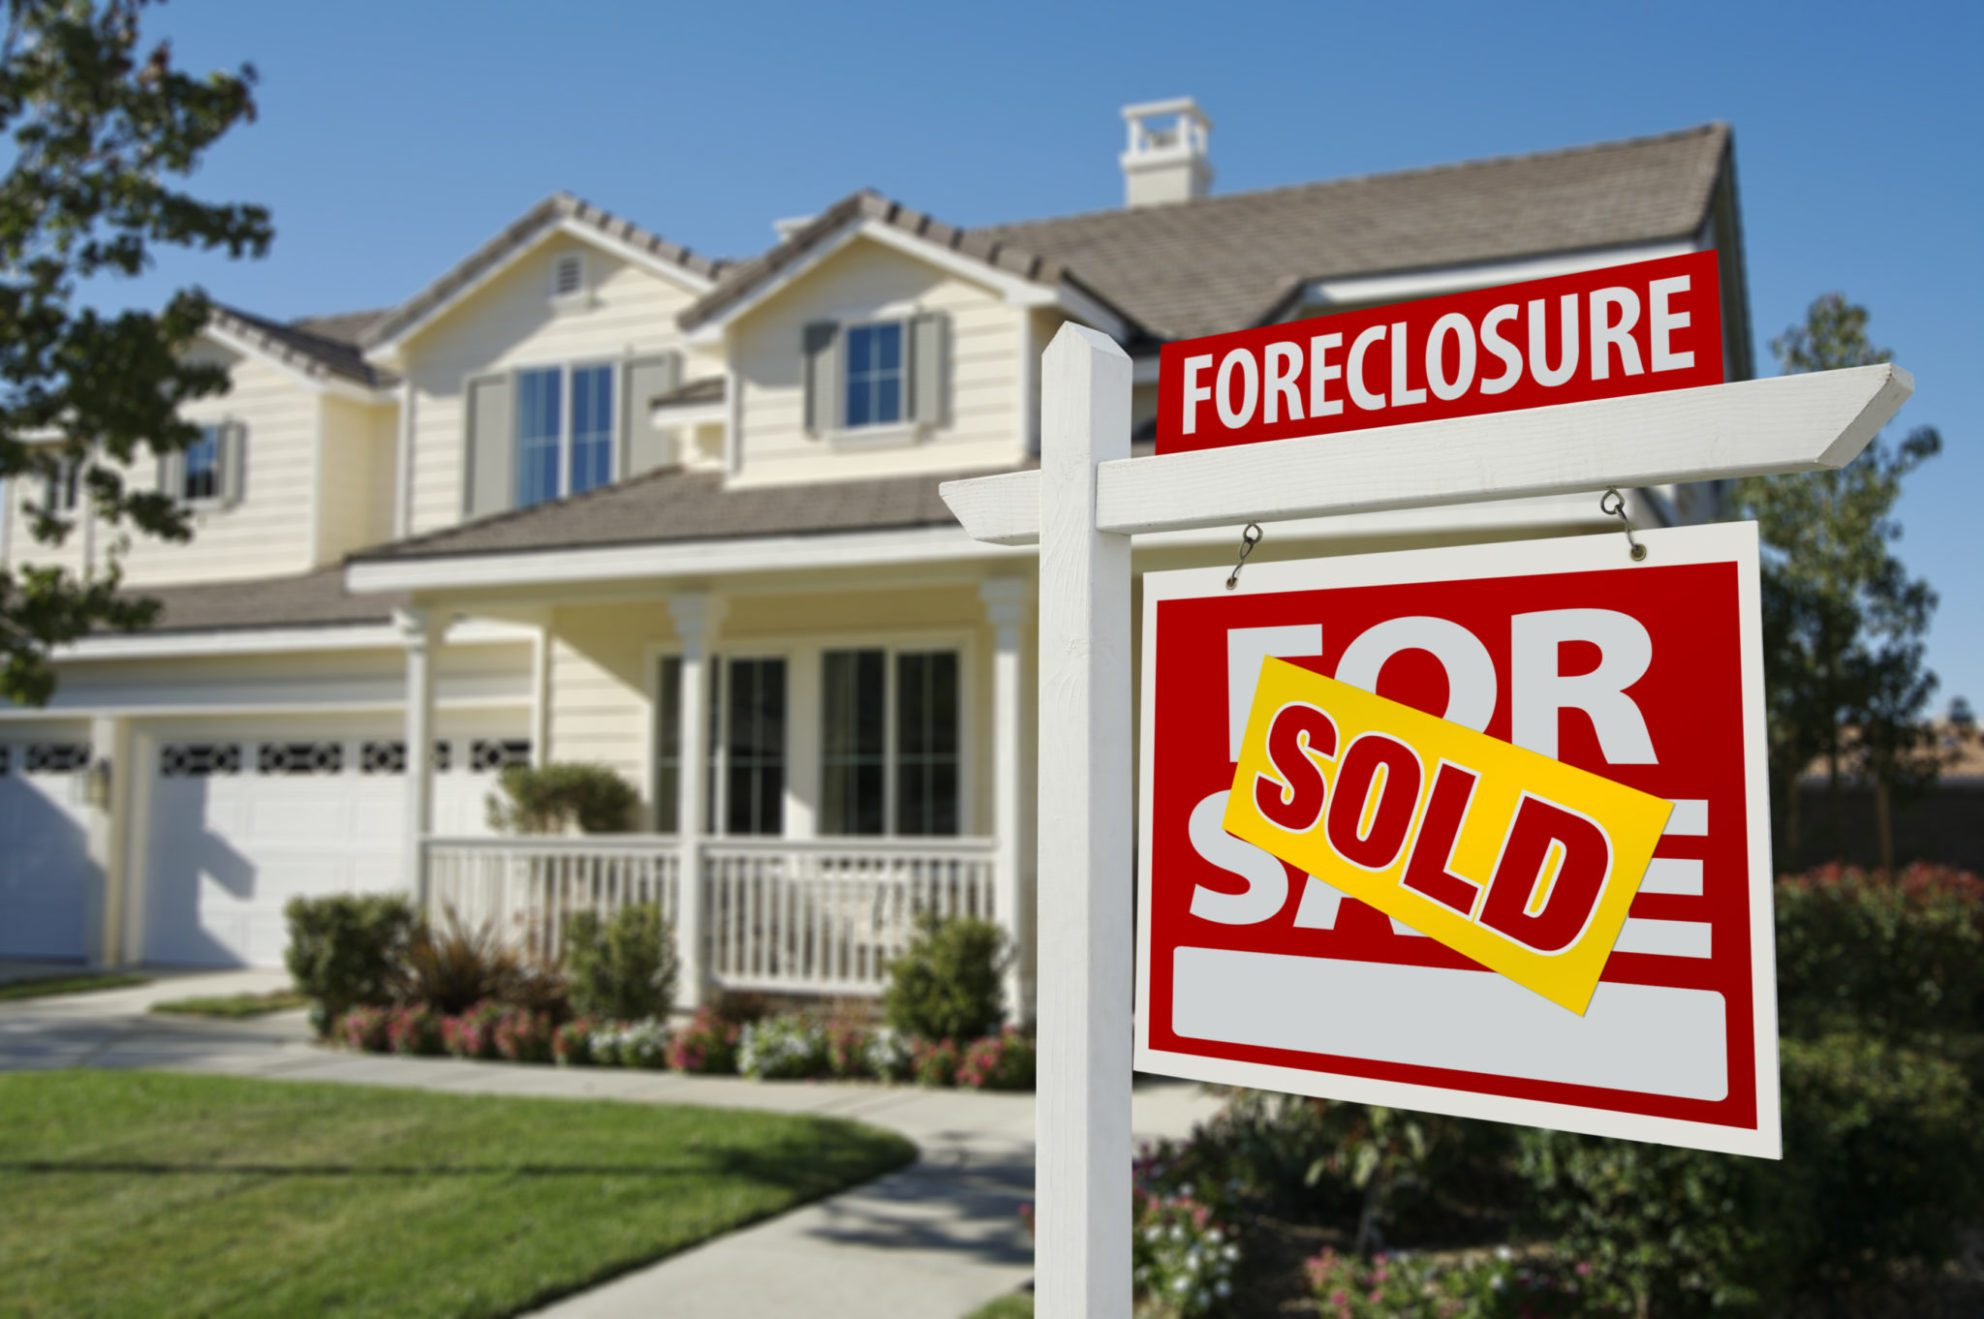 More properties going to the auction block as judicial foreclosure states clear backlogs